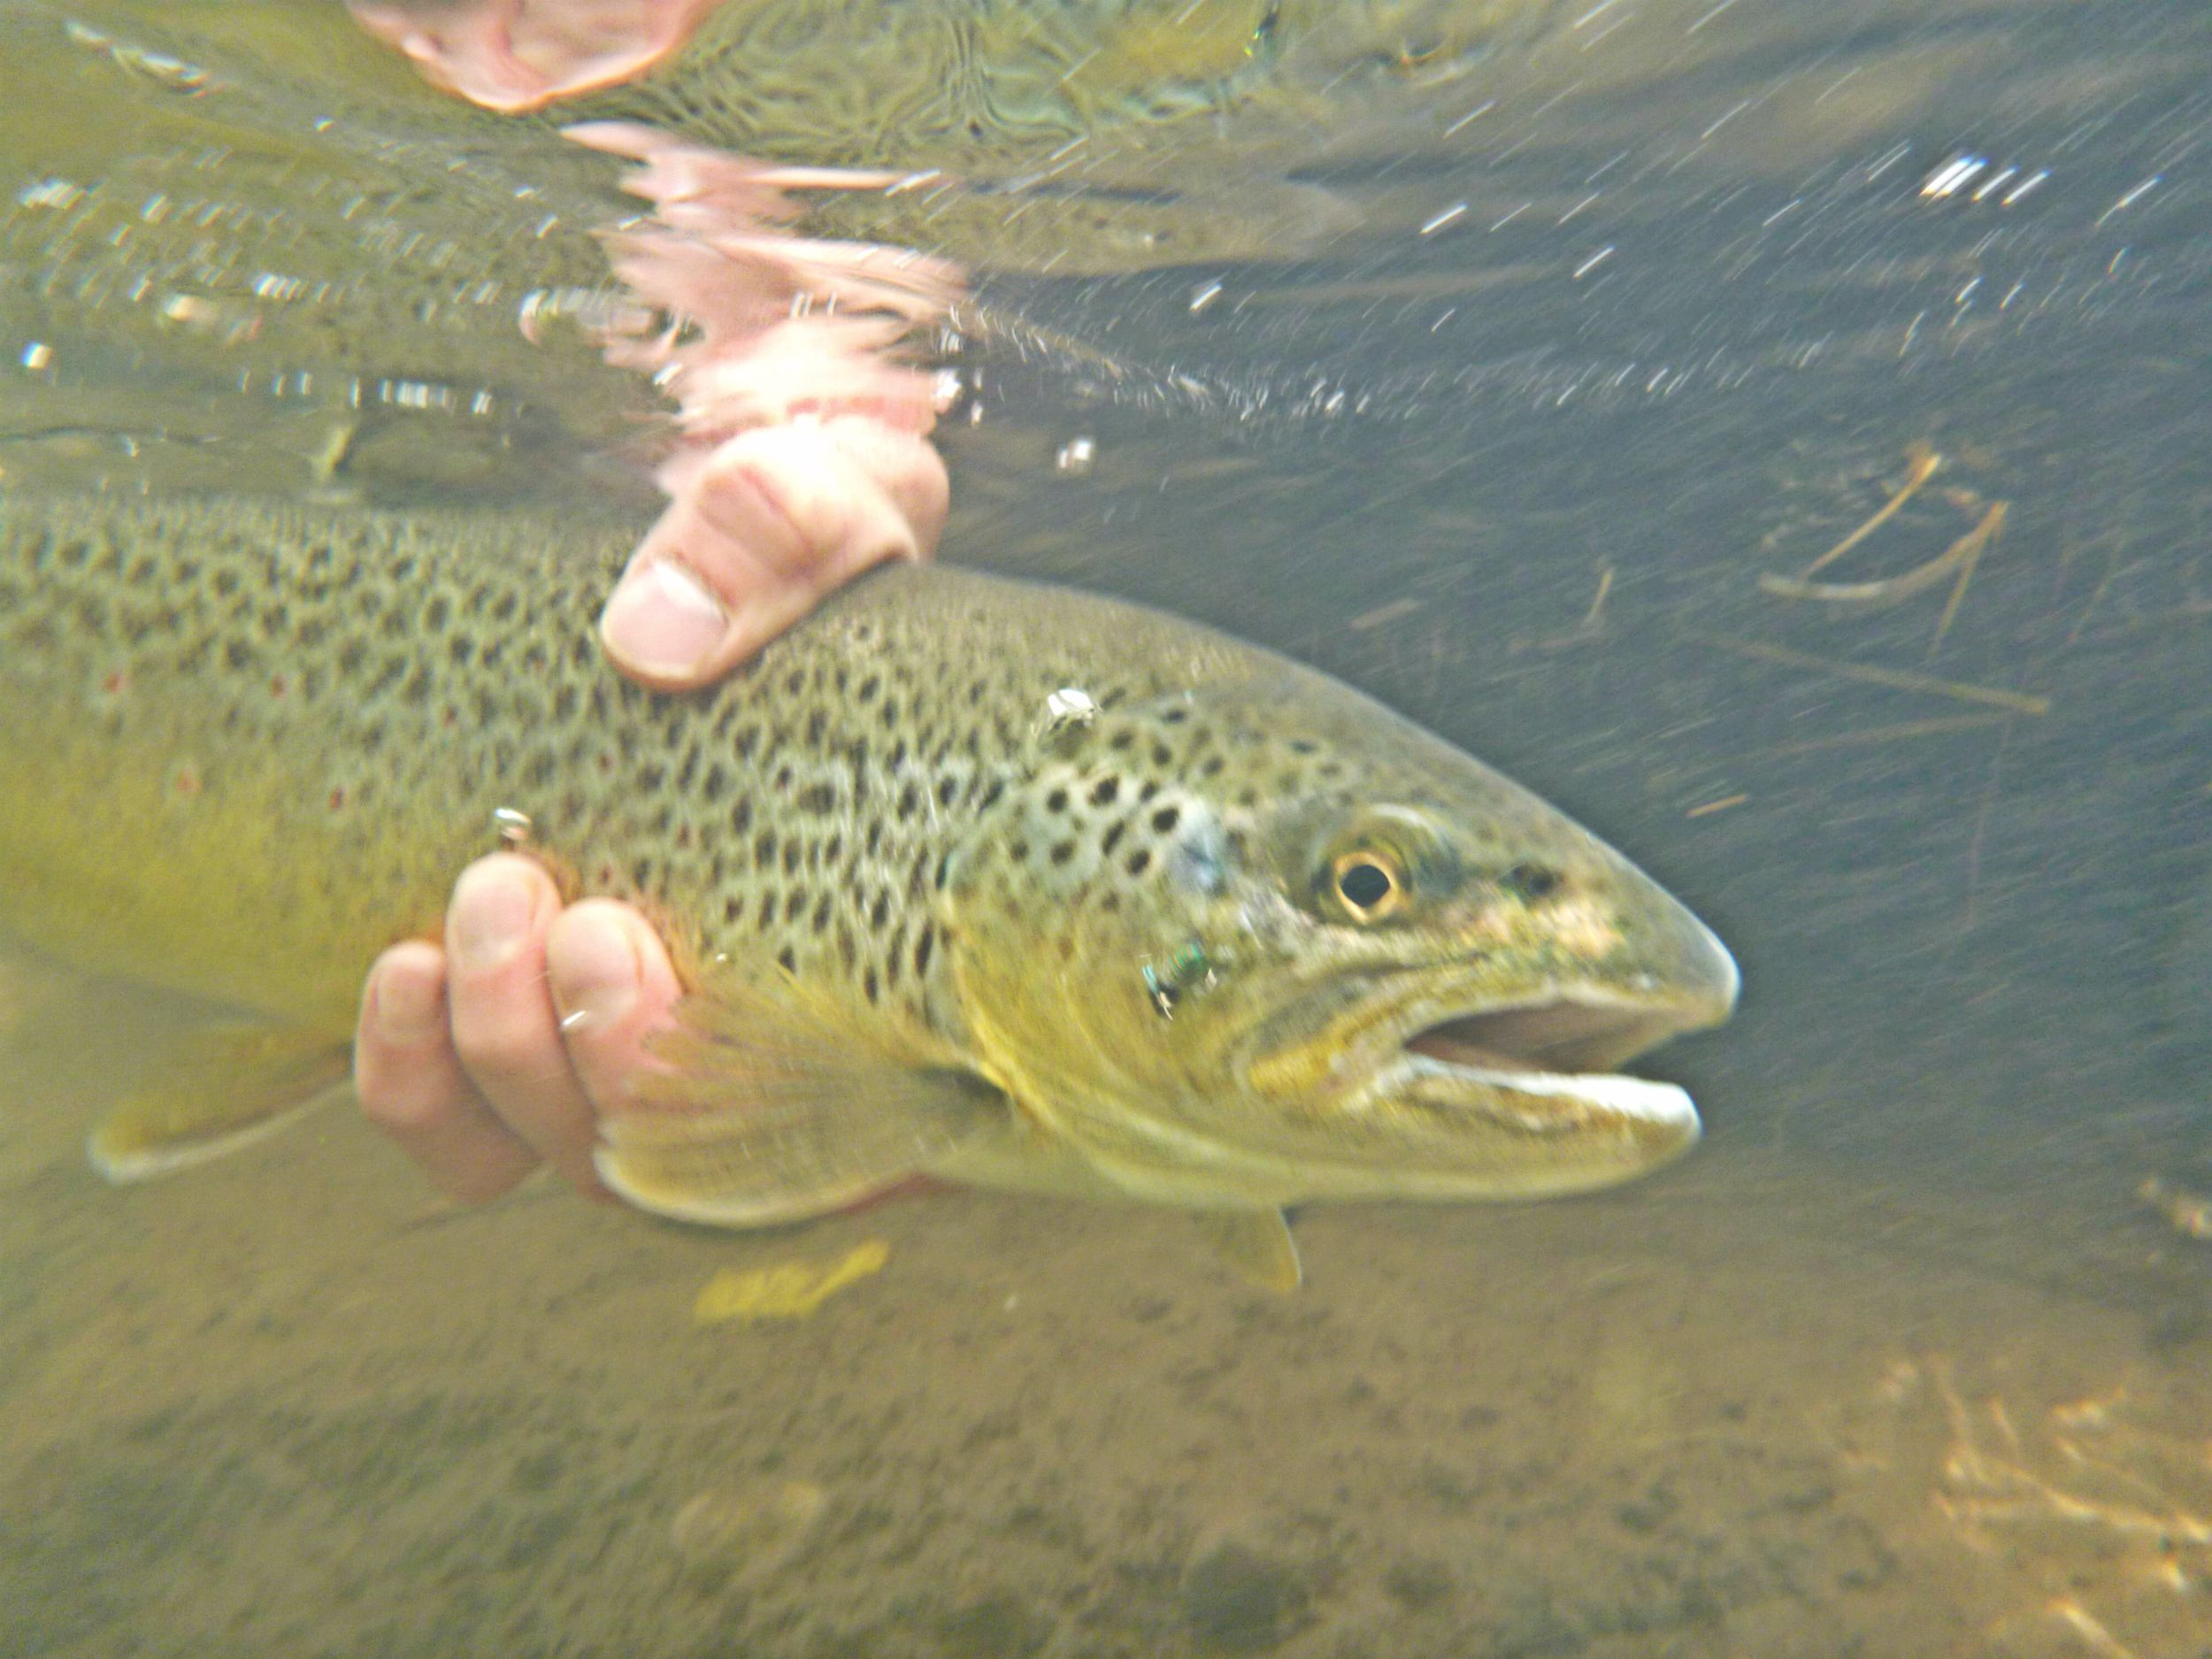 Butte bozeman recreation report by bob ward and sons 4 for Bozeman fishing report